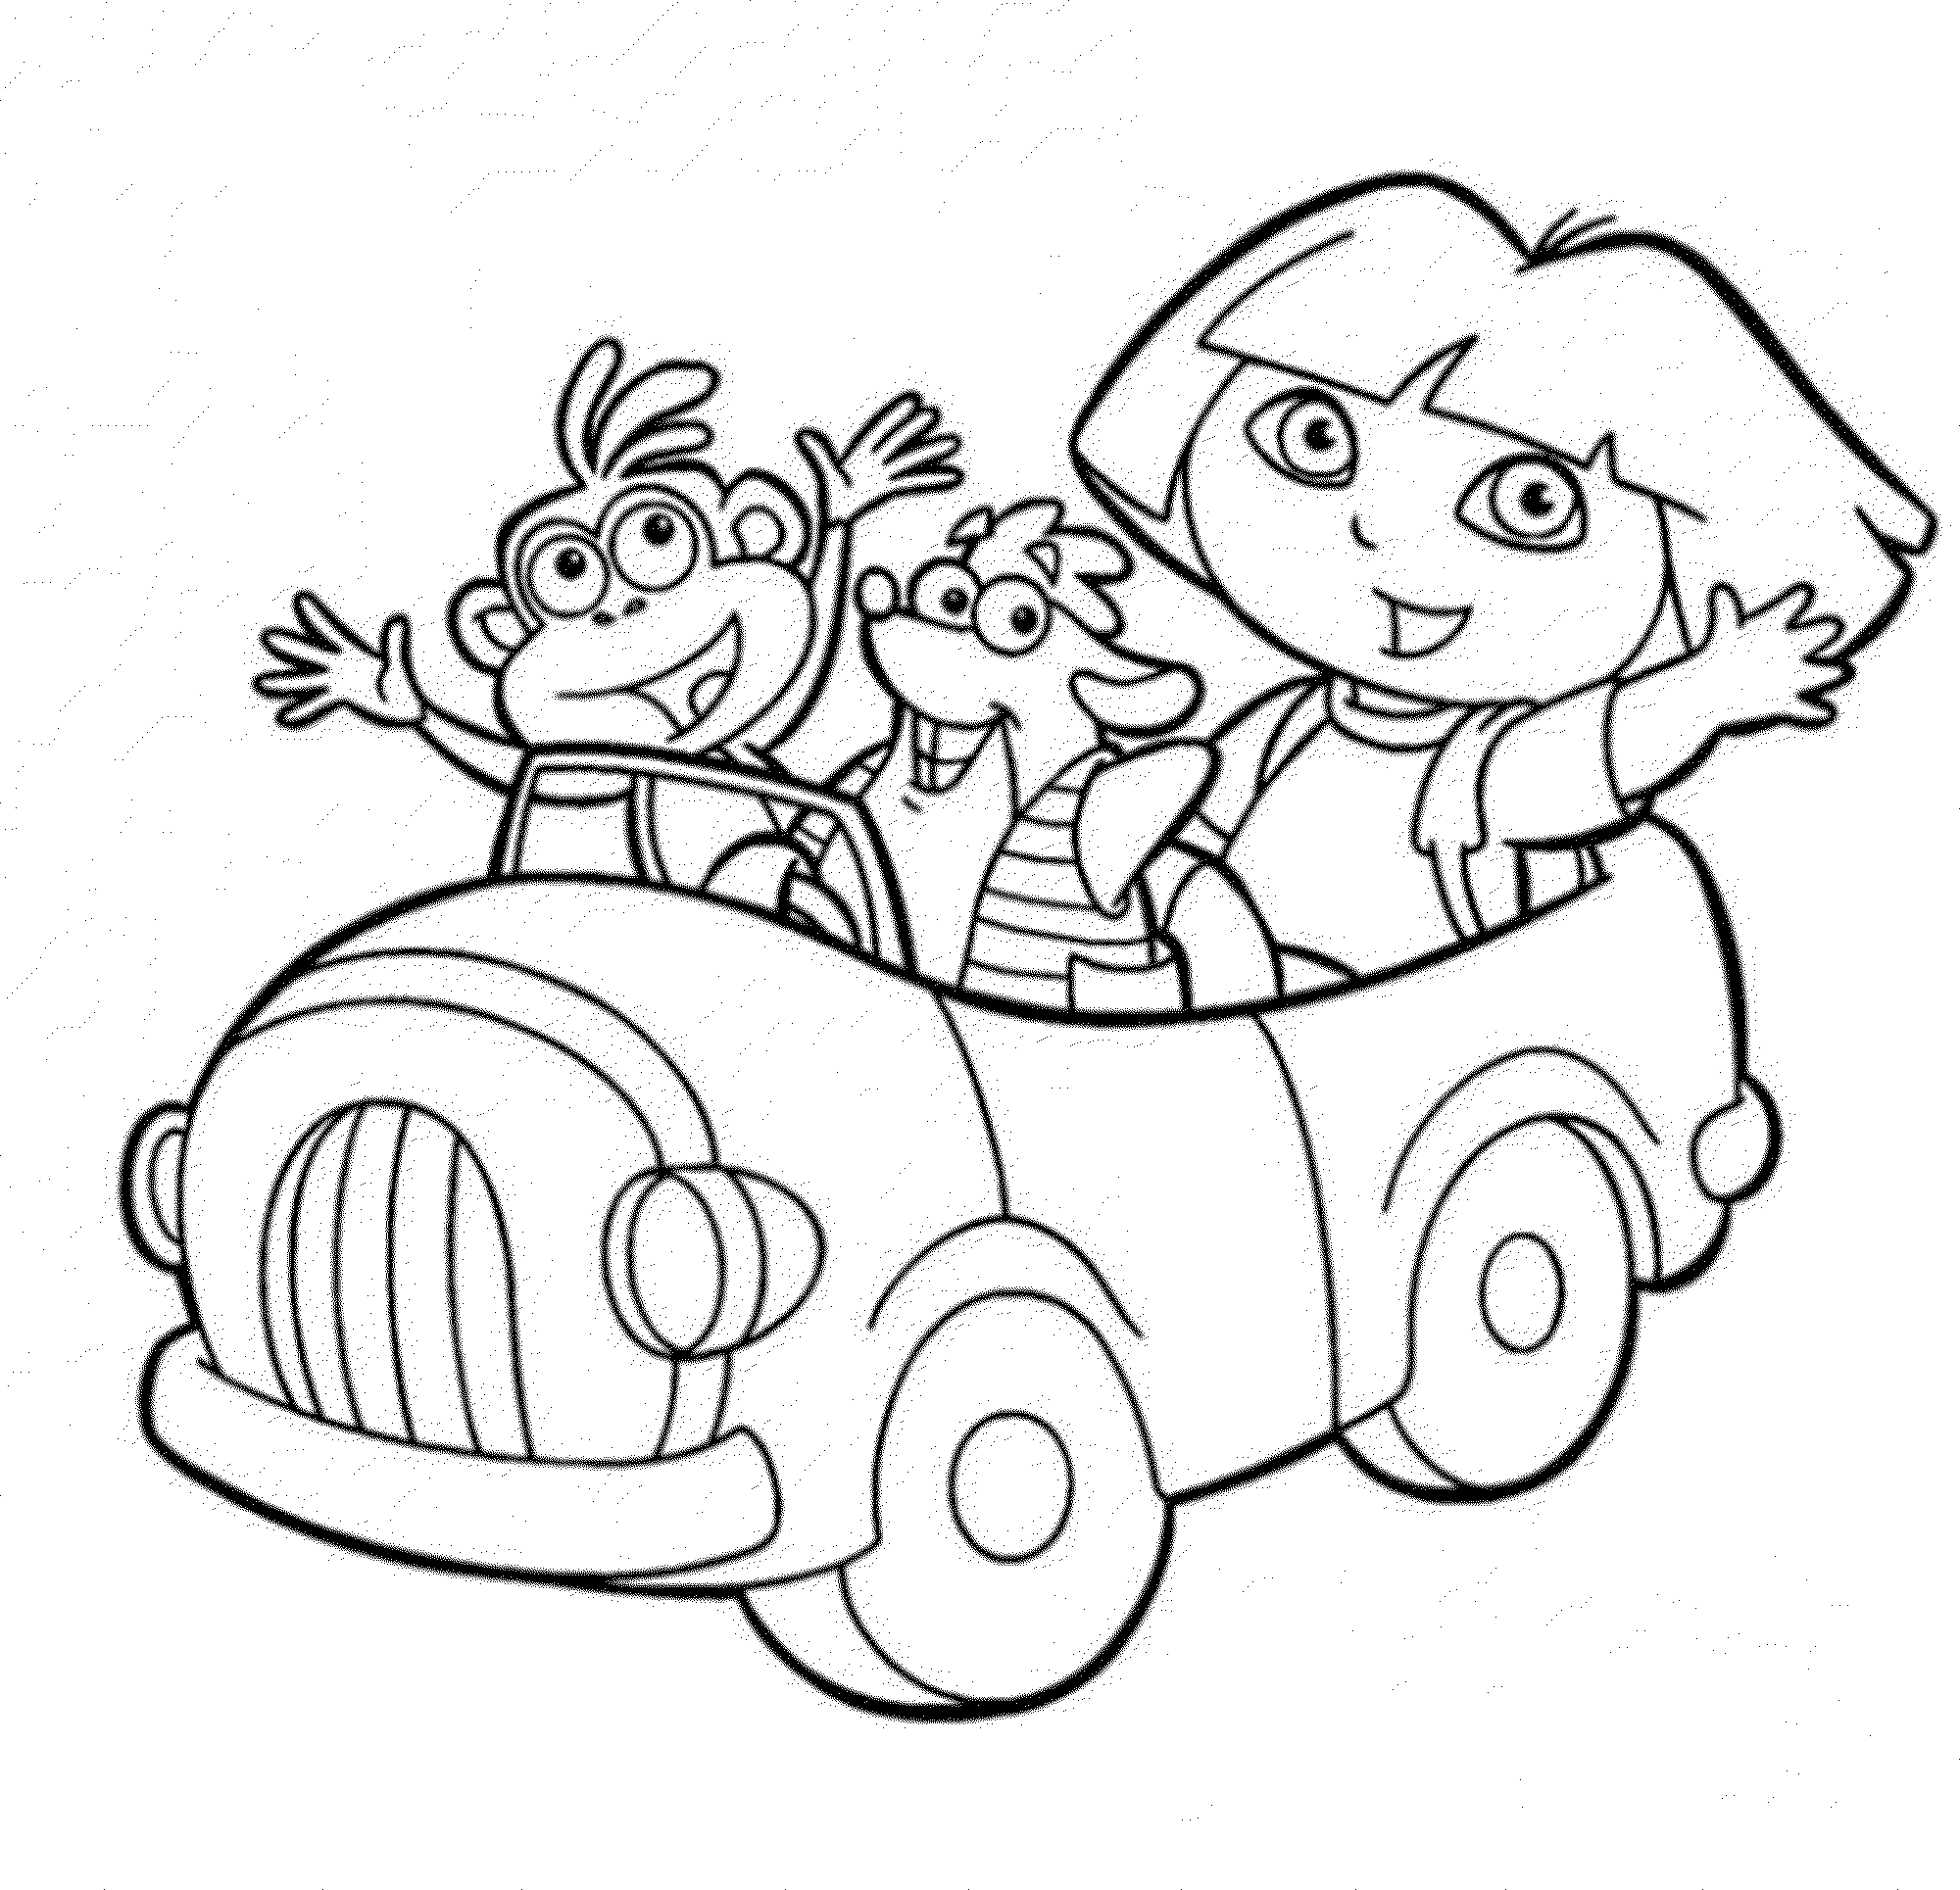 dora colouring pages printable dora christmas coloring pages 12 printable coloring sheets dora printable pages colouring